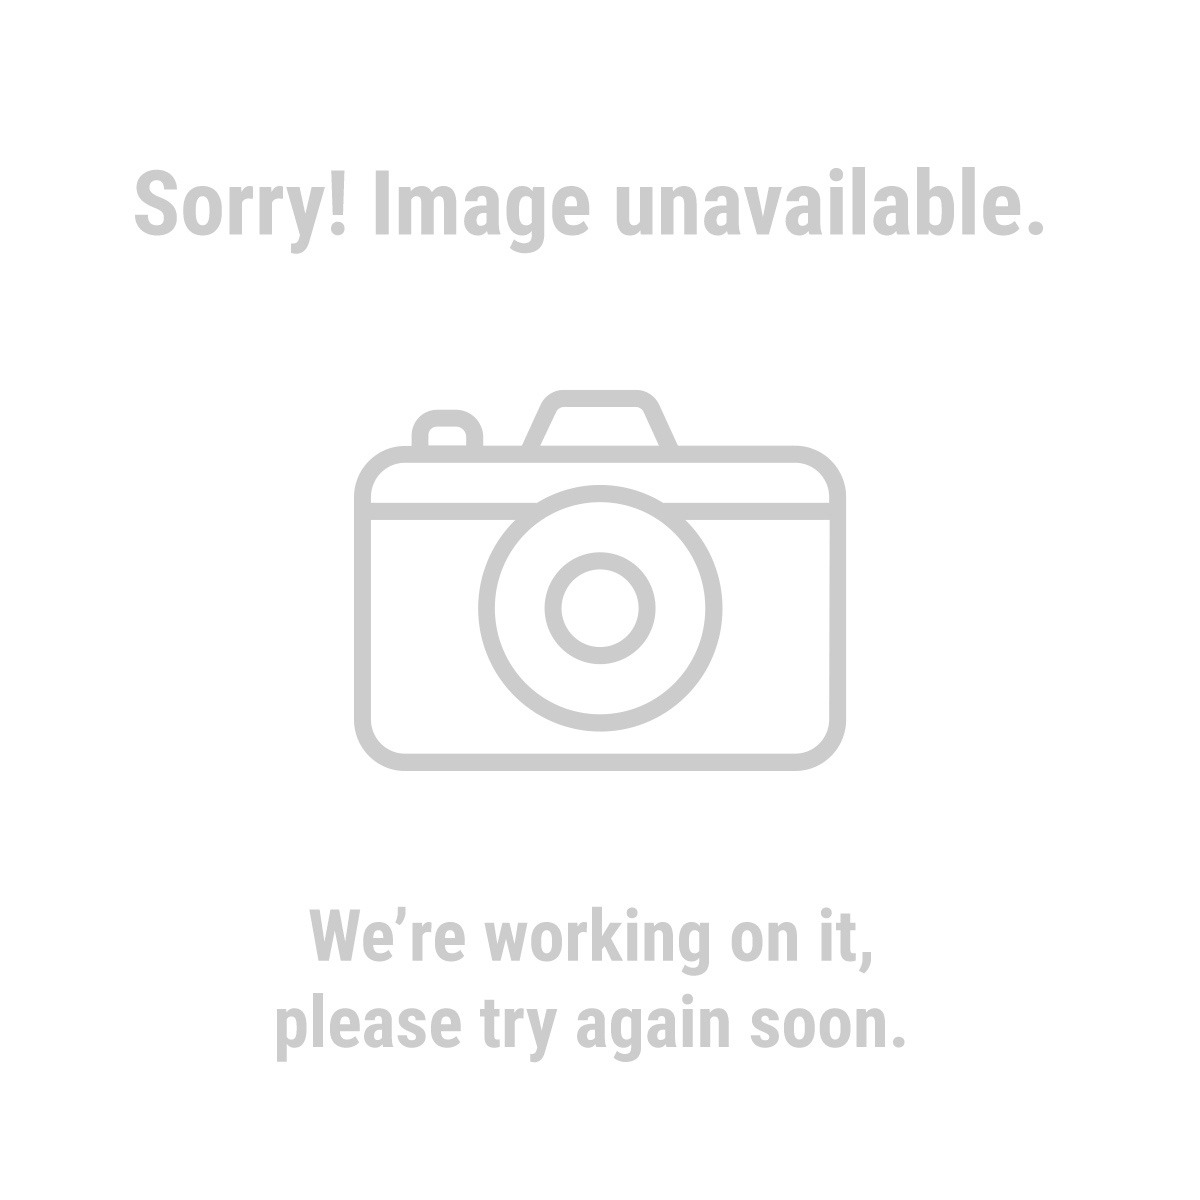 Storehouse 67584 80 Piece Woodruff Key Assortment